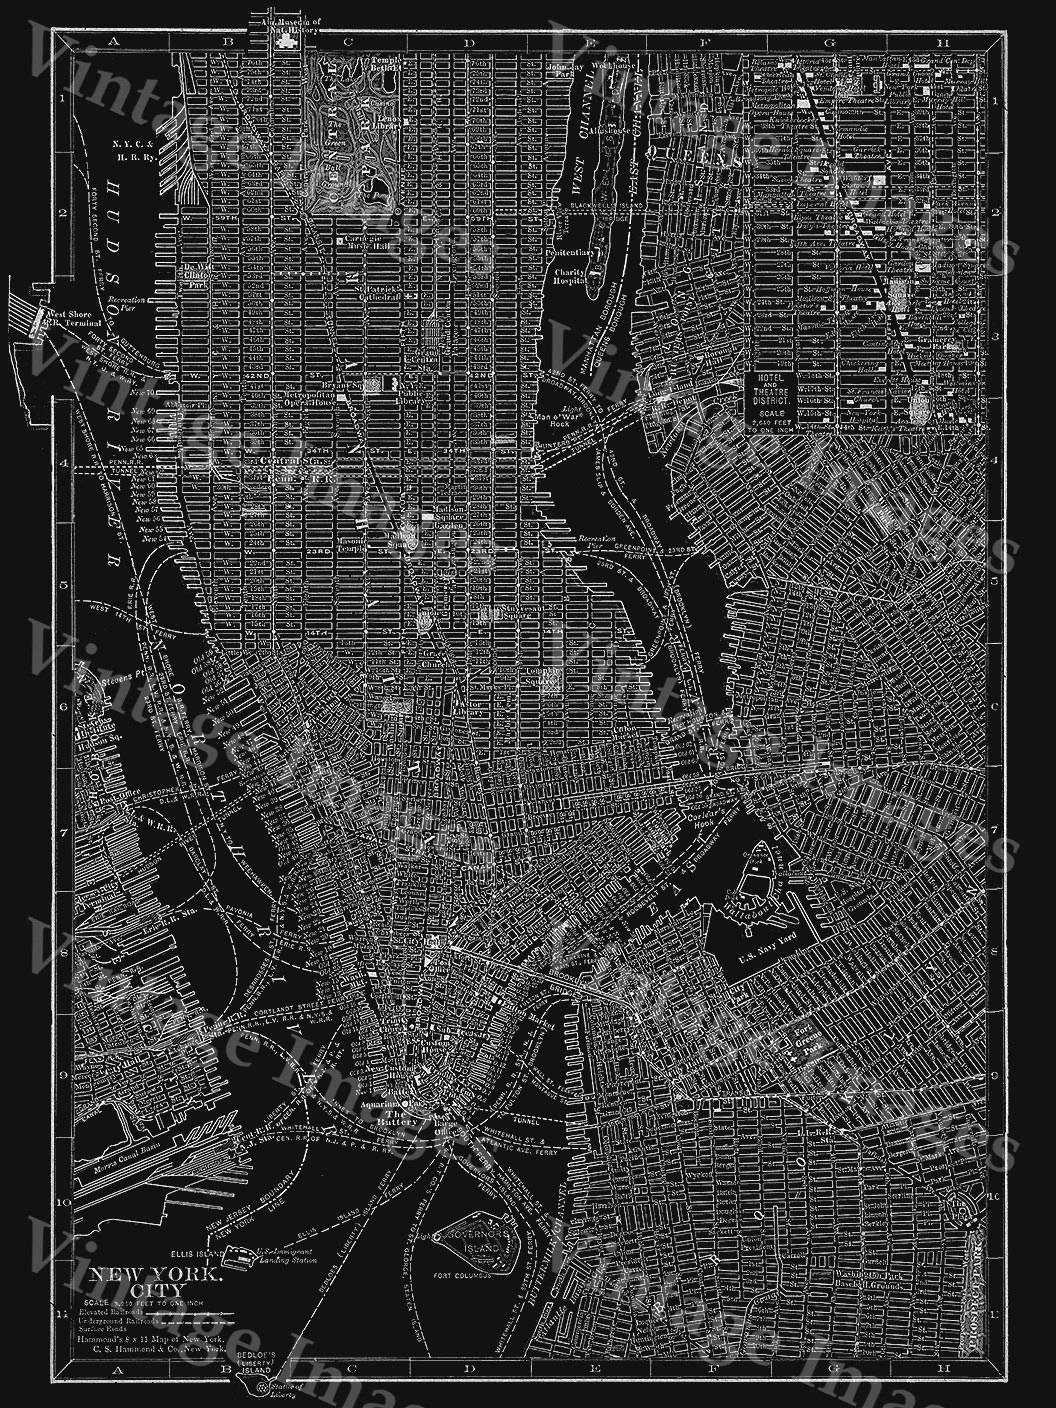 New York Map Art Huge 1910 Black & White New York City Map Antique Inside 2017 New York City Map Wall Art (View 13 of 20)